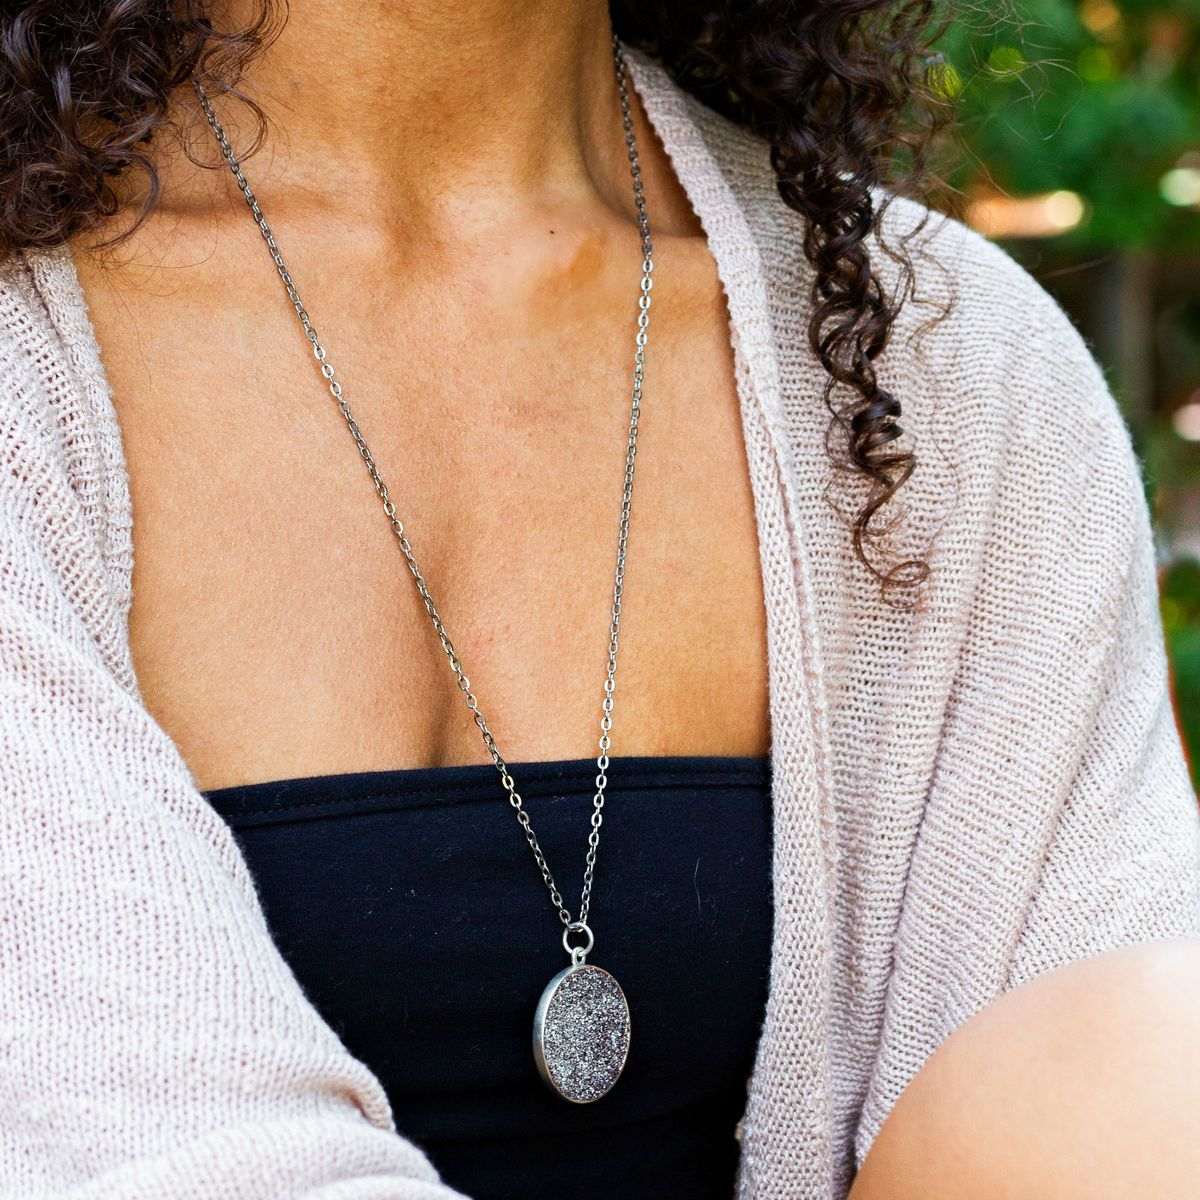 Large Fine Crushed Pyrite Crystal Necklace with German Glass Glitter - product images  of